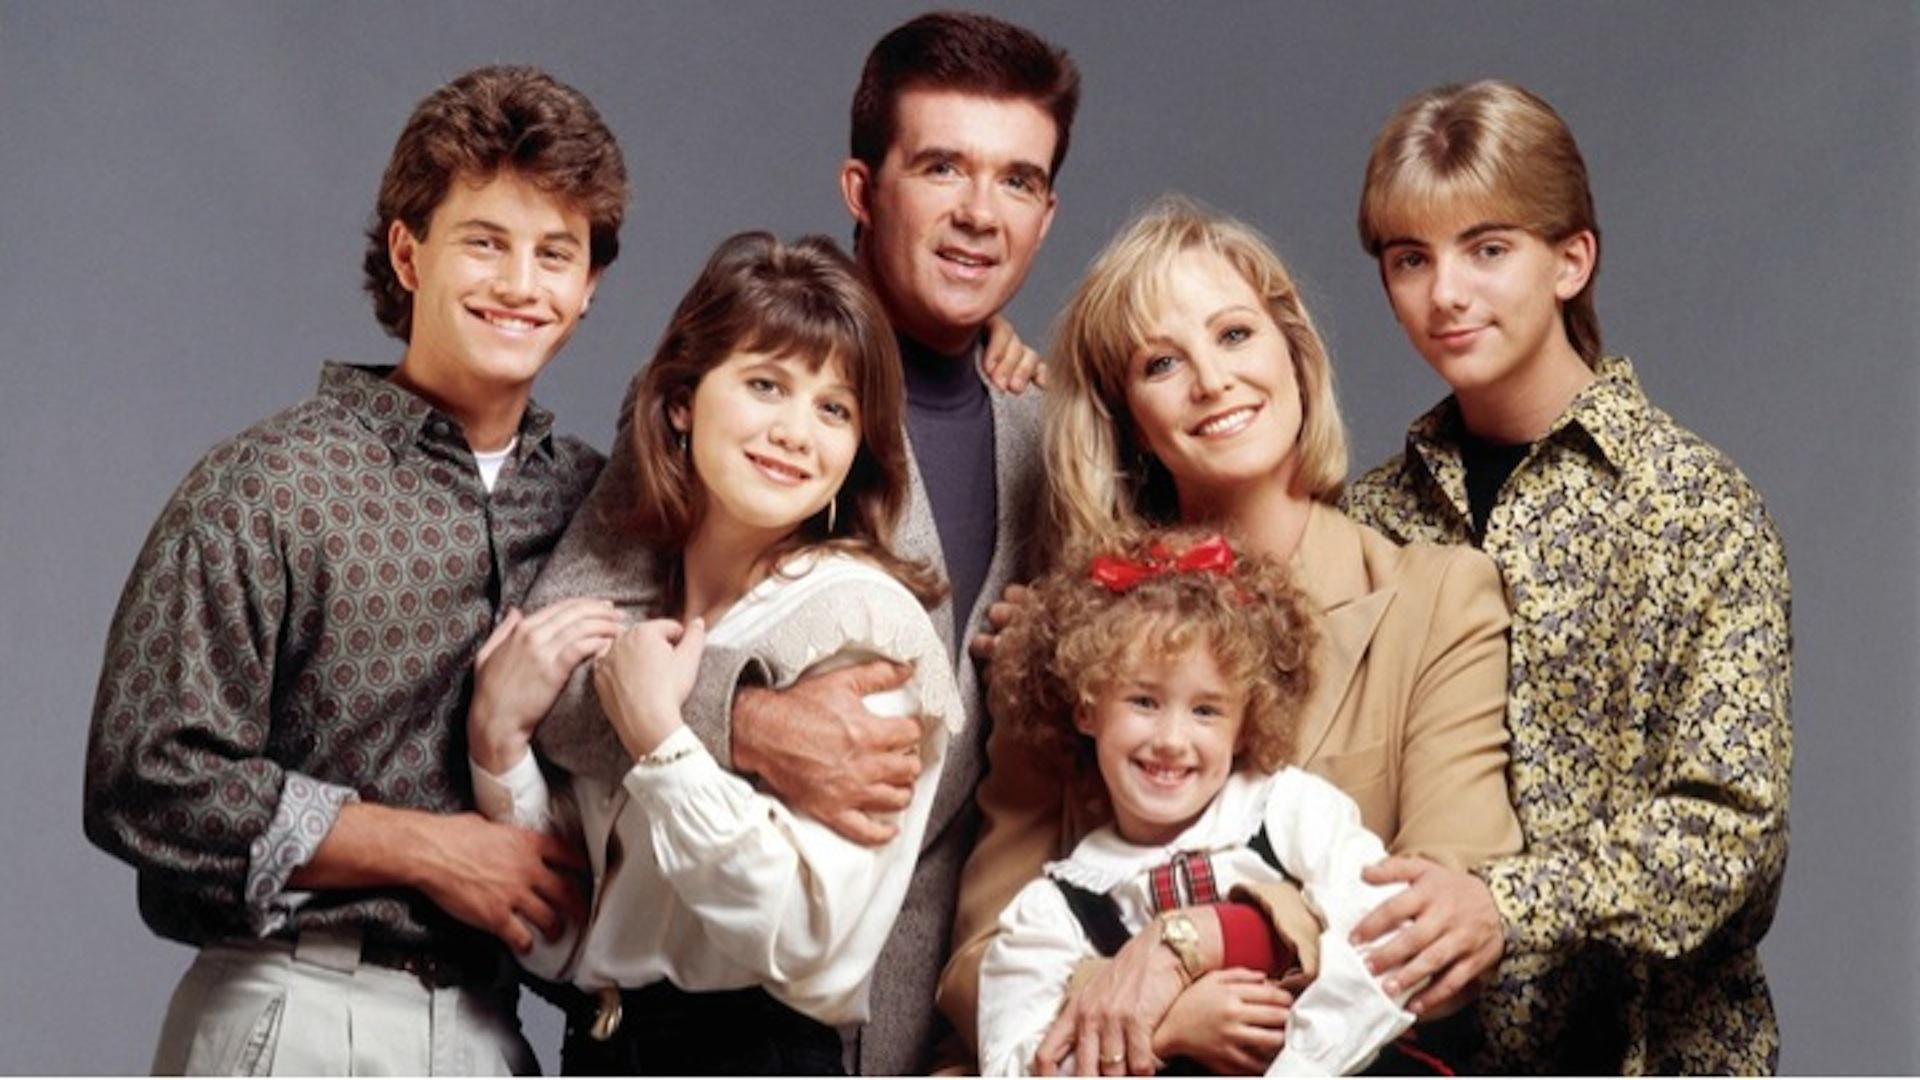 Remembering <em>Growing Pains</em>: 16 Best moments from the show